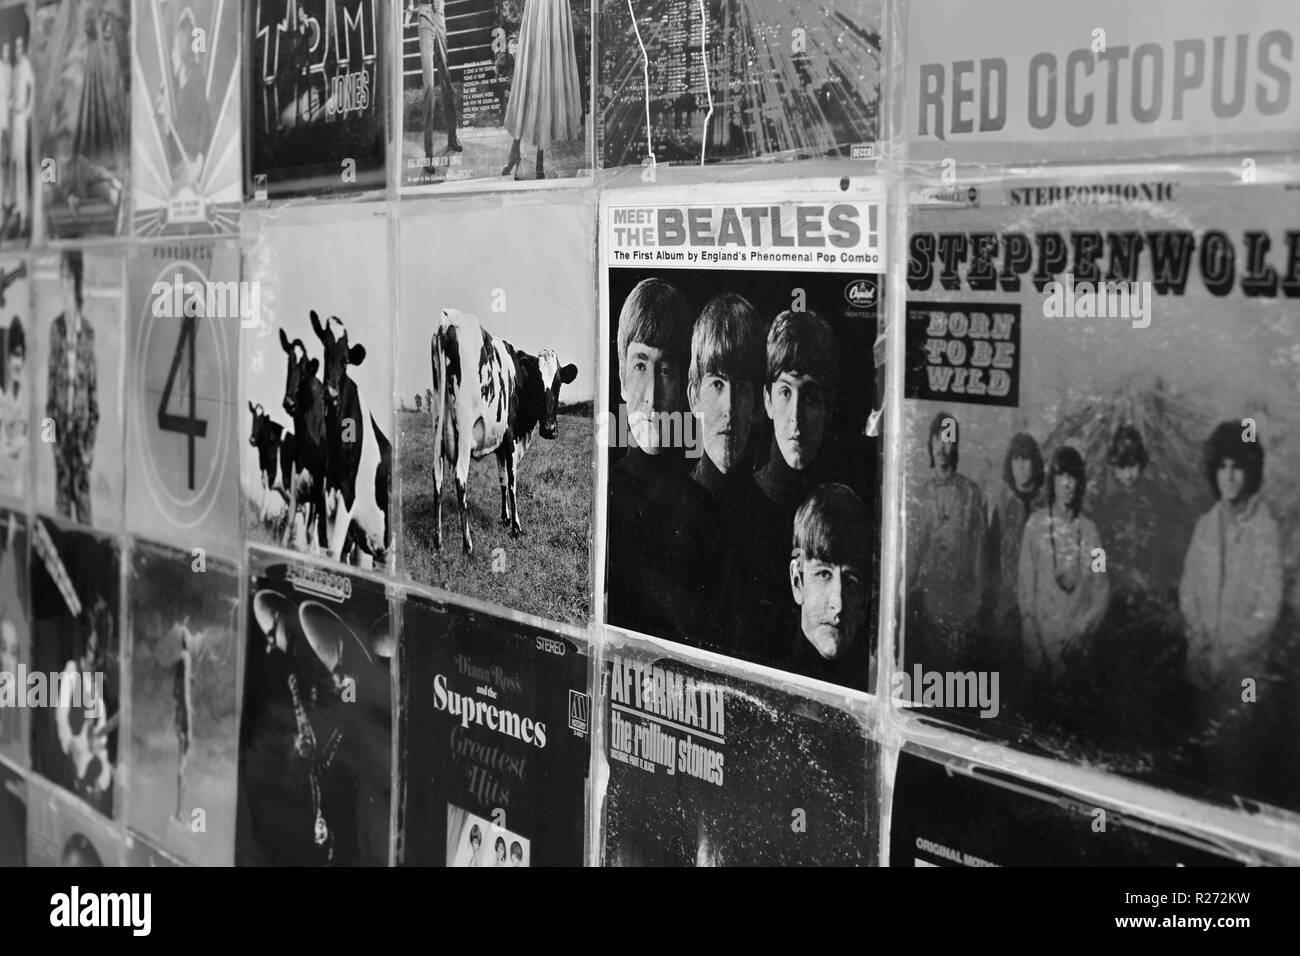 ATHENS, GREECE - AUGUST 29, 2018: Wall with vintage vinyl records pop and rock music album sleeves background. Selective focus black and white. - Stock Image